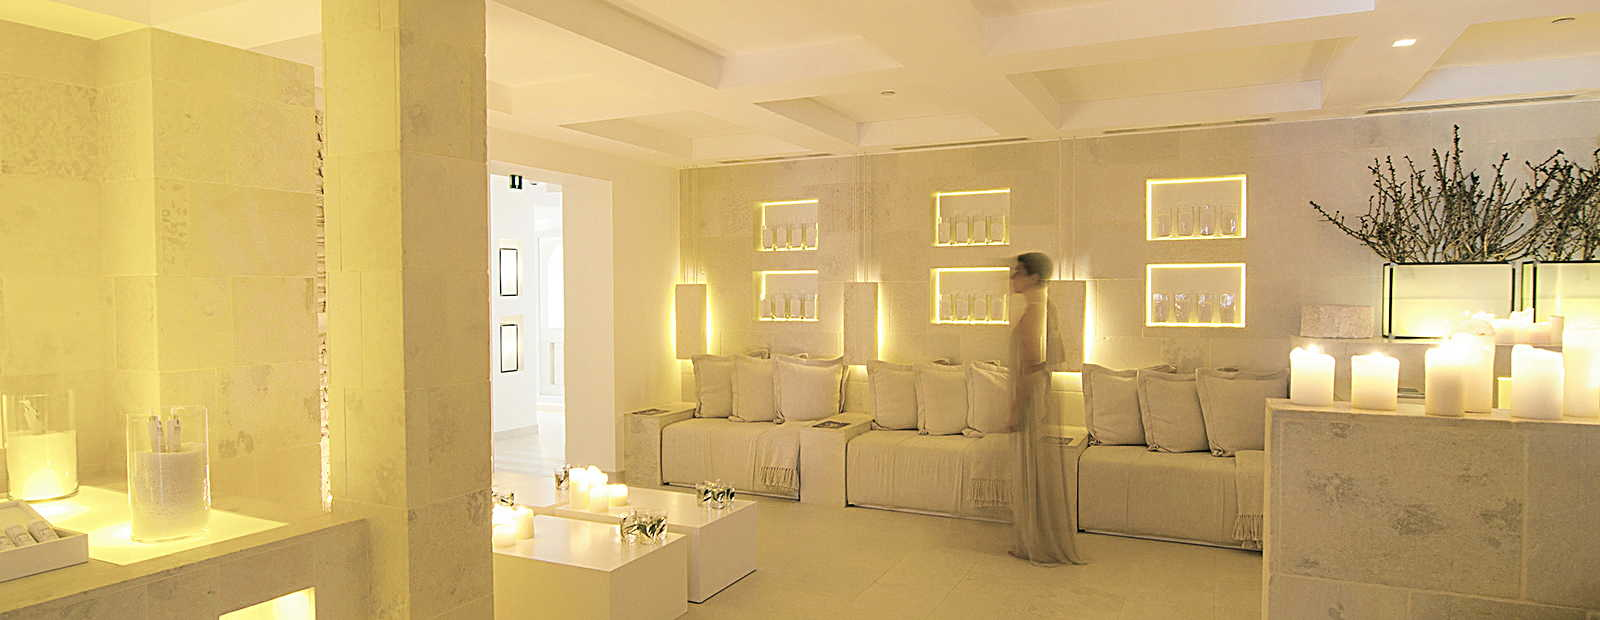 Exklusive spa boutique design hotels italien for Design hotels griechenland